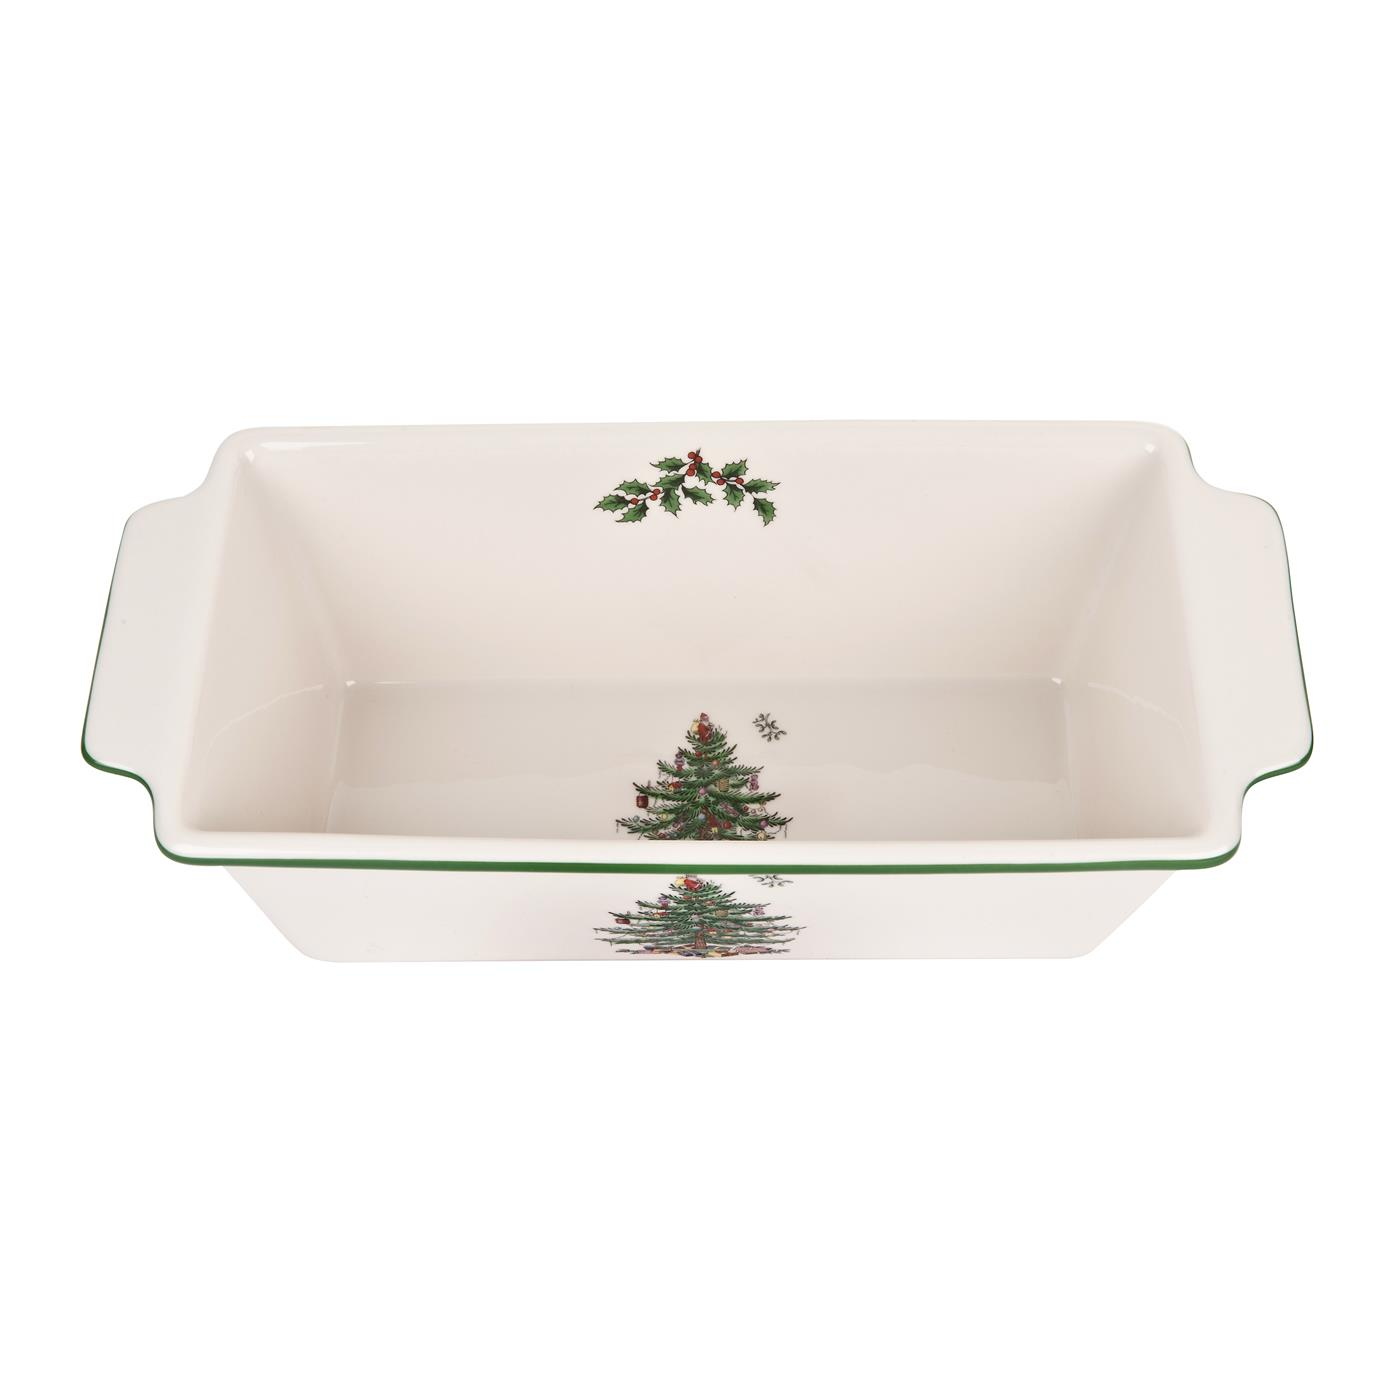 Spode Christmas Tree Loaf Pan image number 0